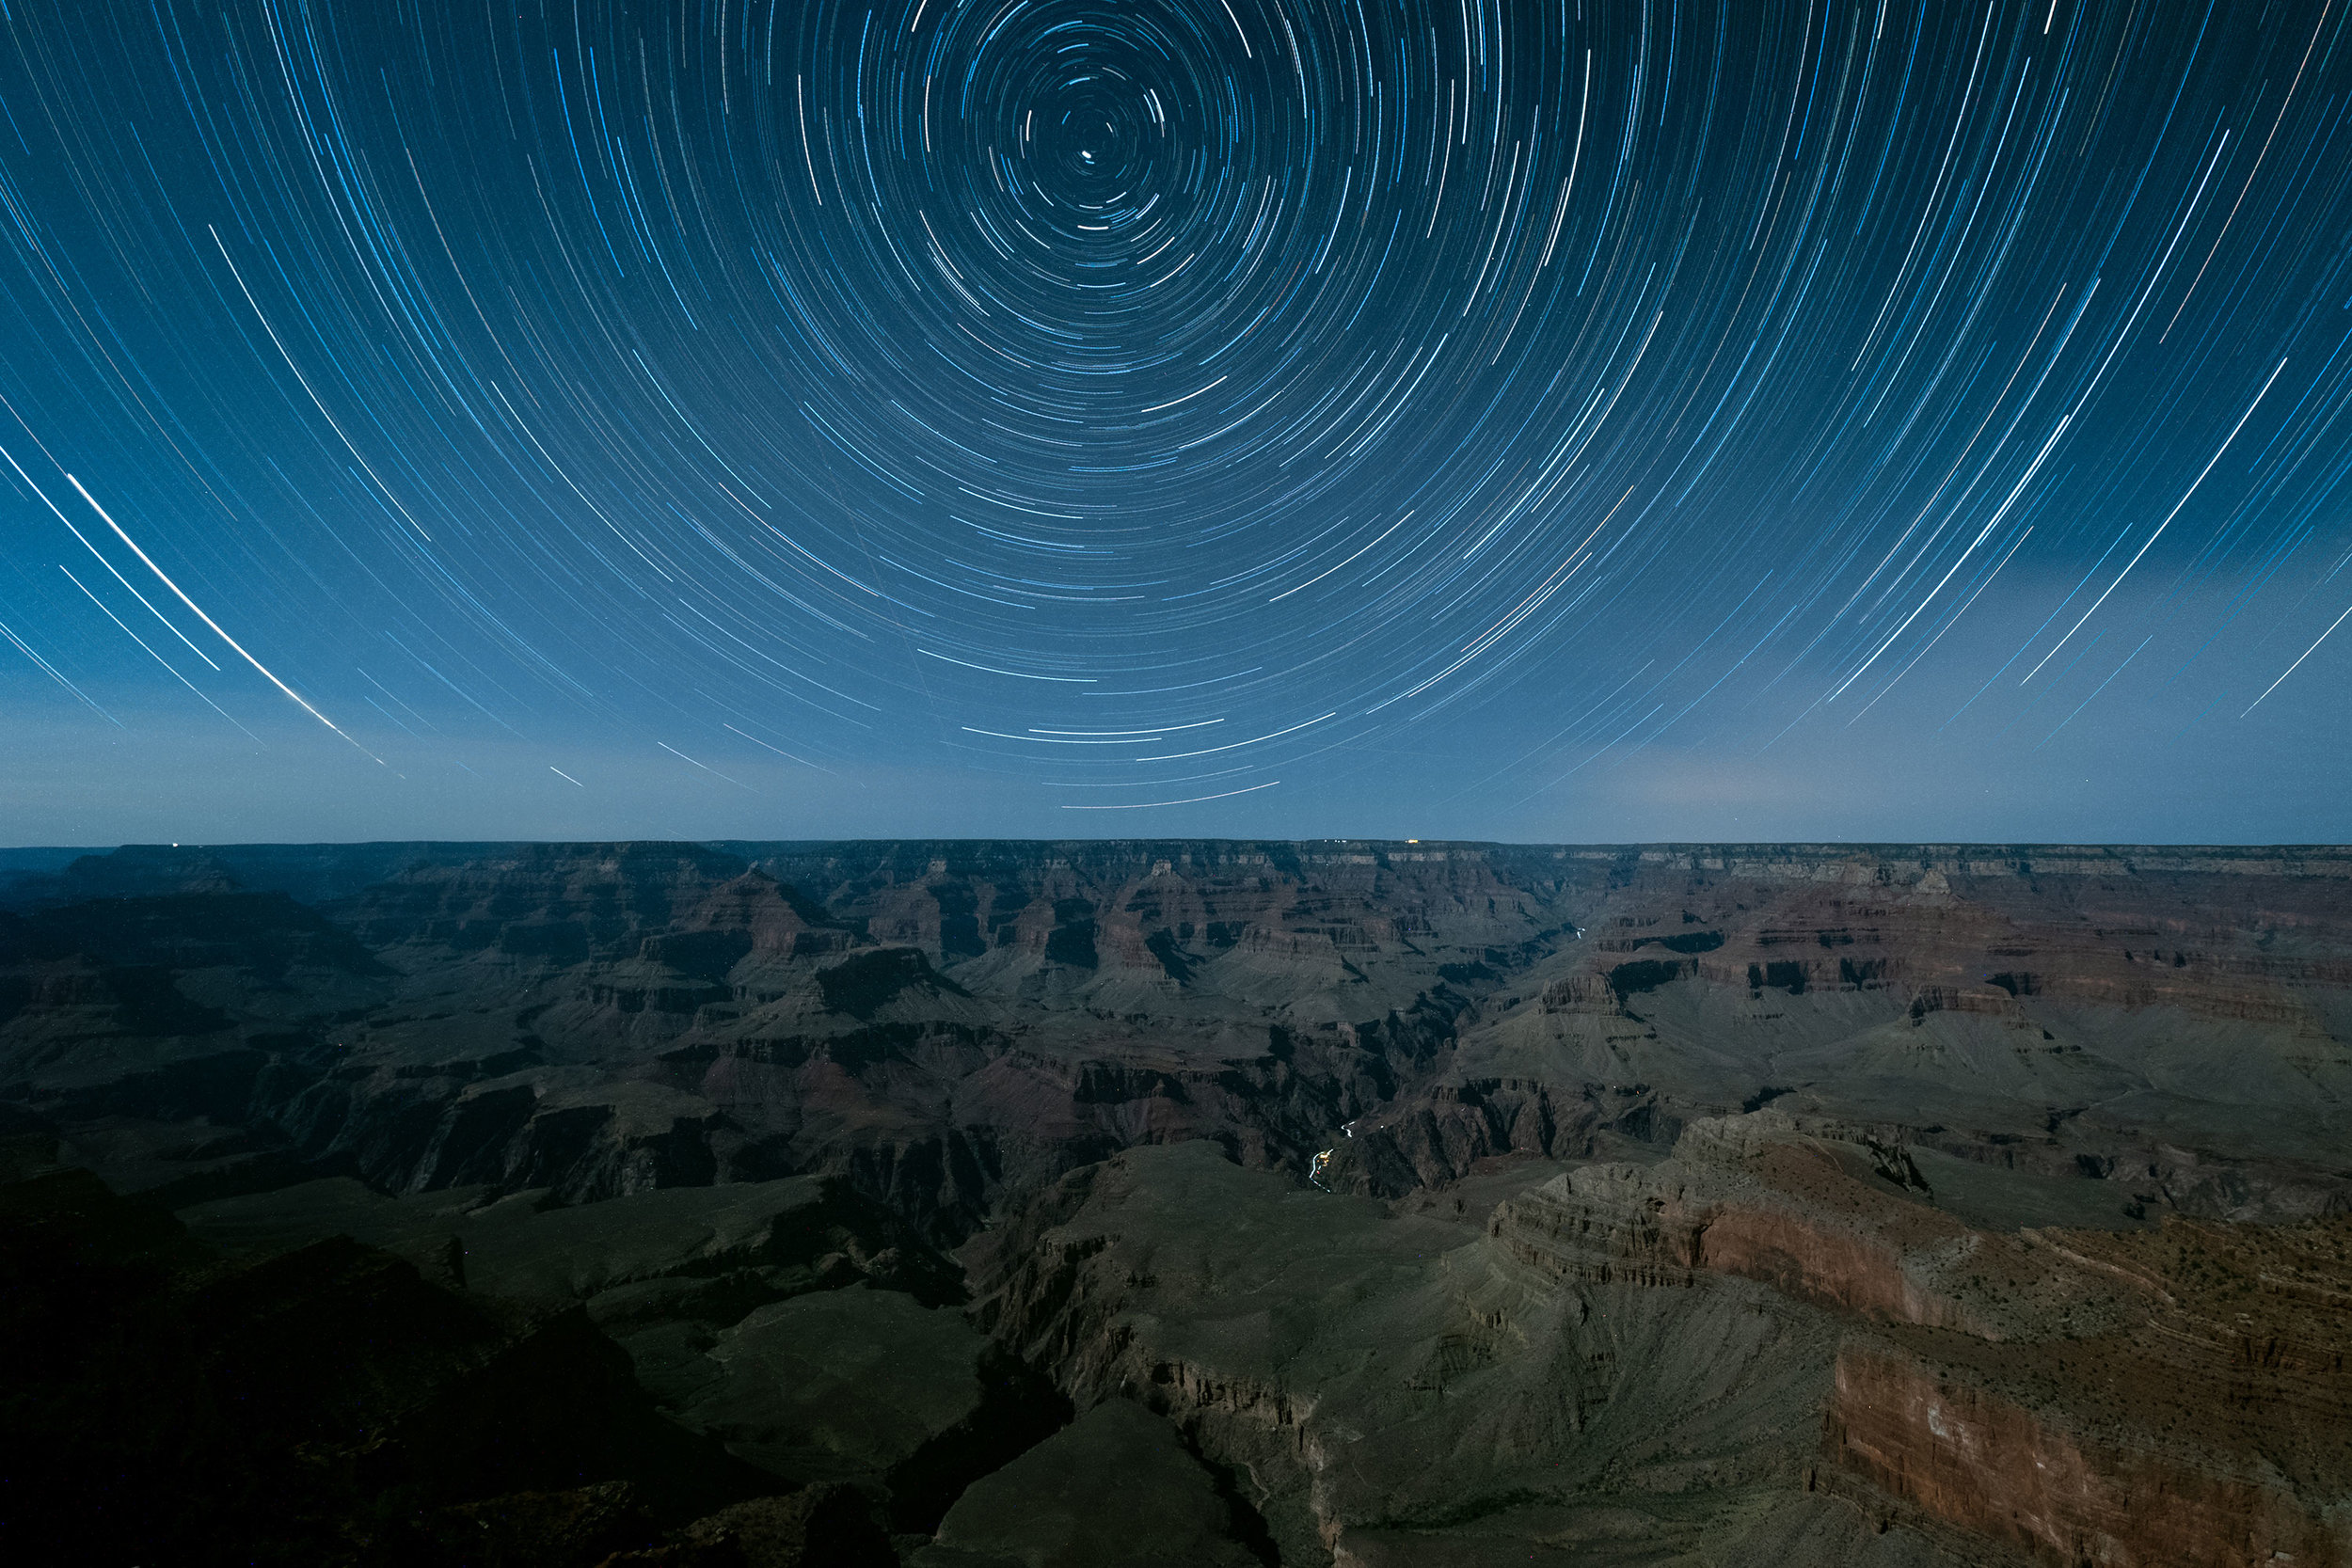 Grand Canyon National Park South Rim—COMPLETED - Come celebrate the centennial of the Grandest park of them all!